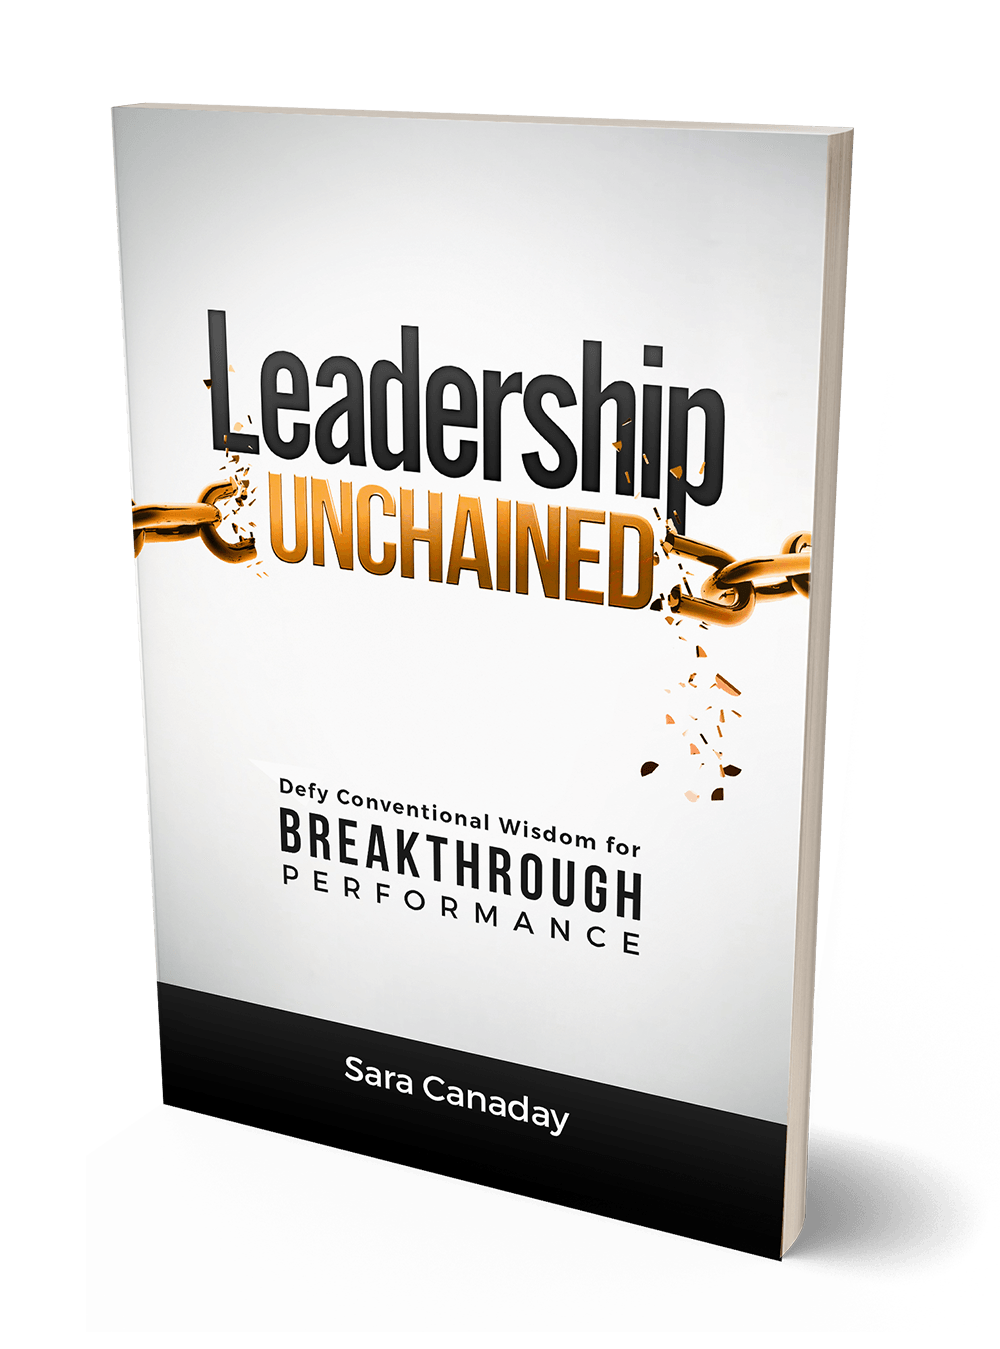 Leadership Unchained: Defy Conventional Wisdom for Breakthrough Performance.